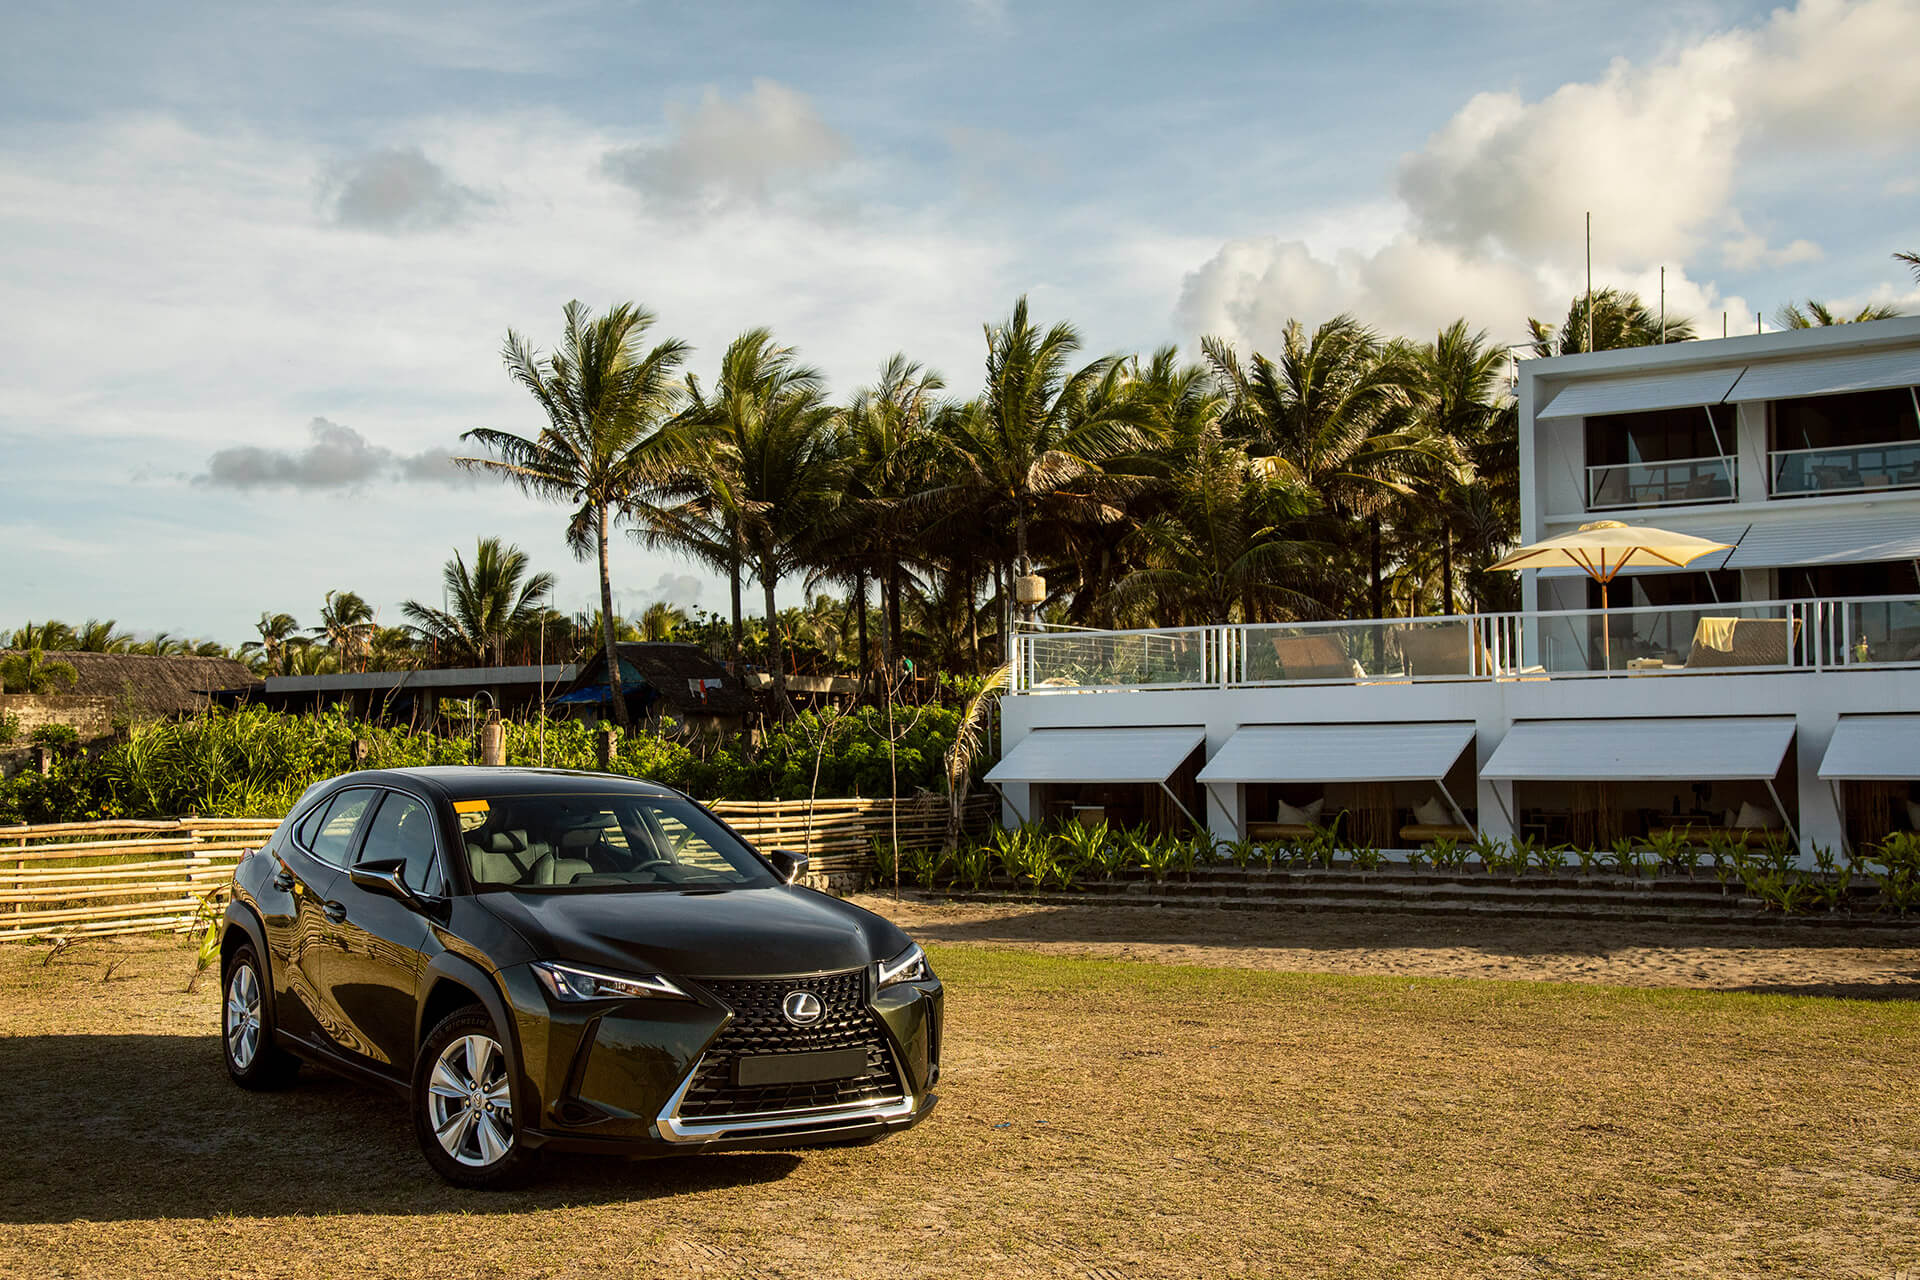 Aboard the latest Lexus UX, Team GRID takes a trip down to the southernmost tip of Luzon and finds comfort and luxury in designs made one with nature.